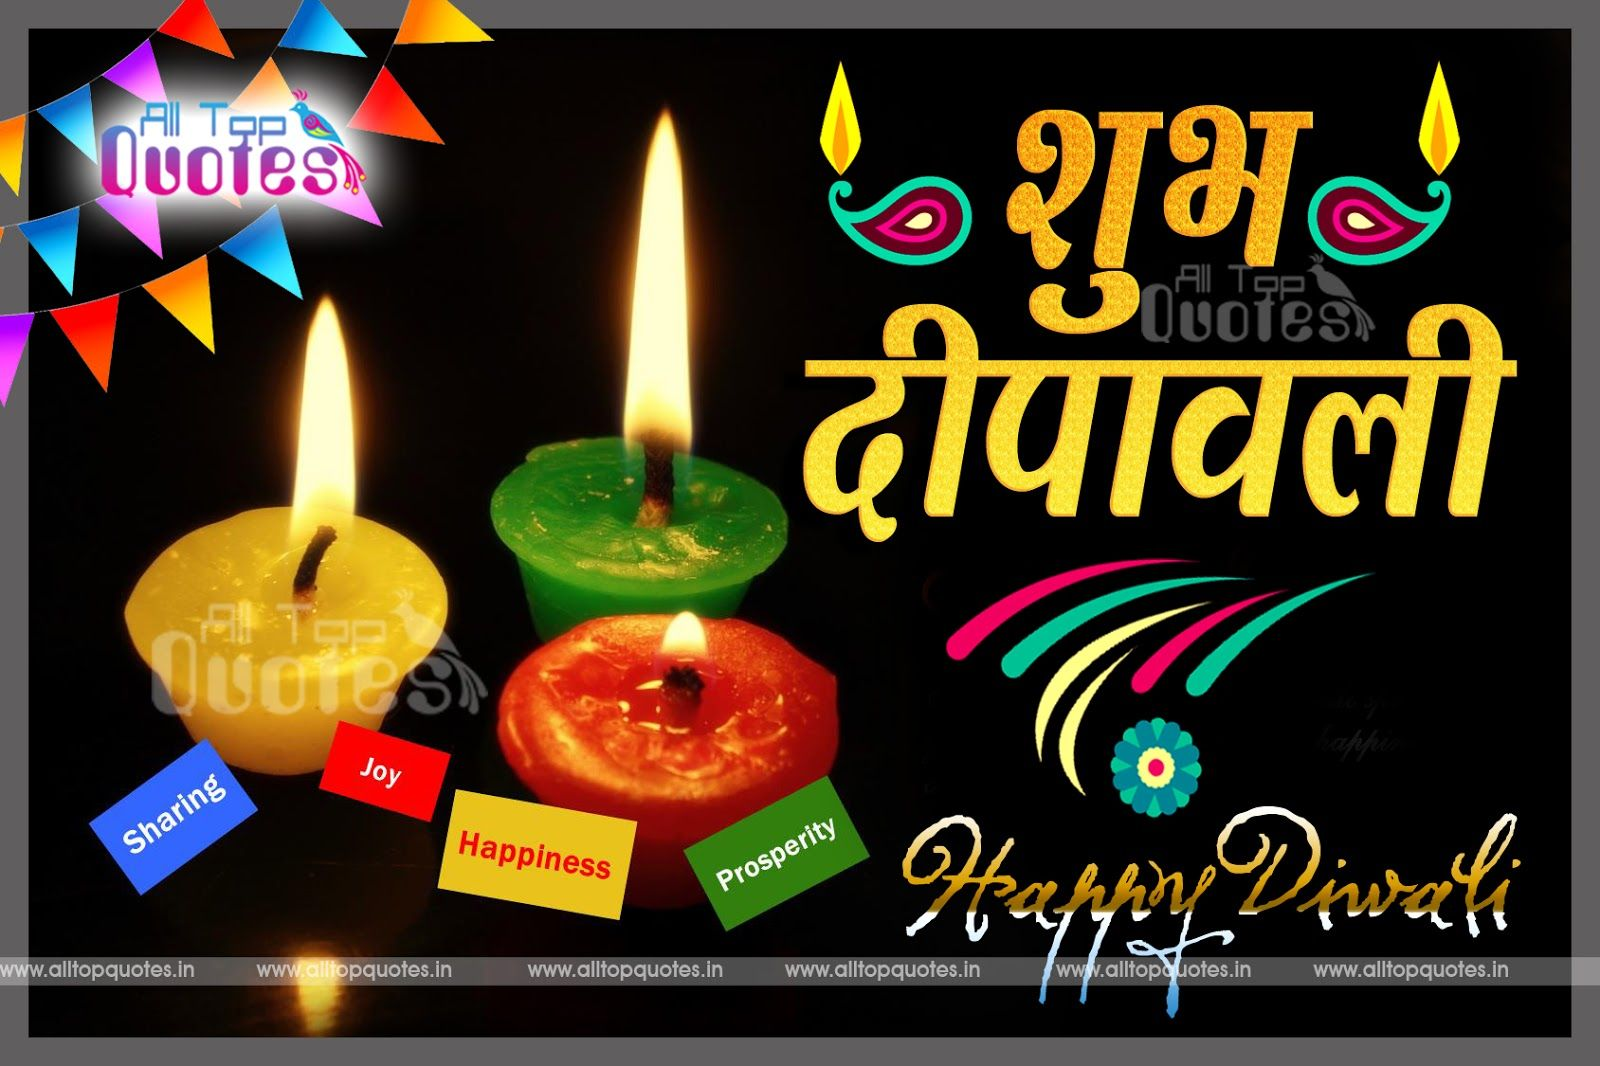 Happy diwali hindi quotes and messages online top hindi diwali happy diwali hindi quotes and messages online top hindi diwali wishes and quotations online m4hsunfo Gallery